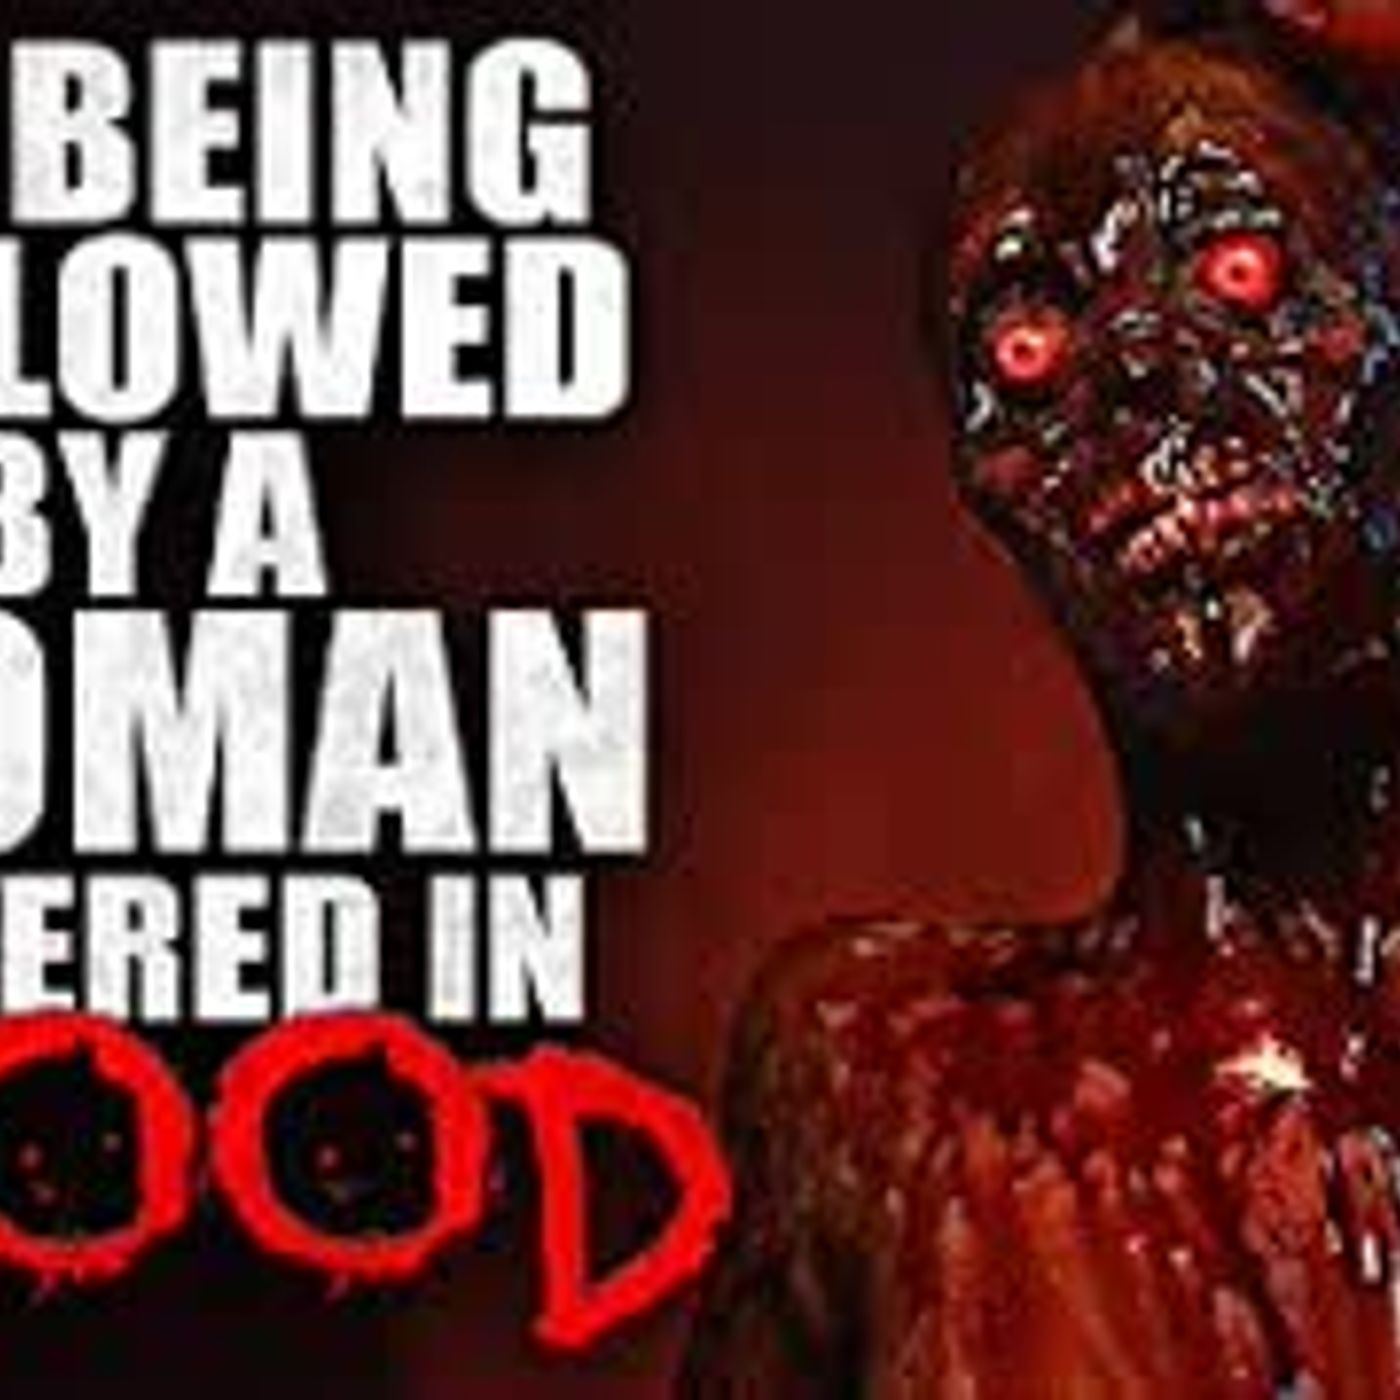 """For Most of My Life, I've Been Followed By a Woman Covered in Blood"" Creepypasta"